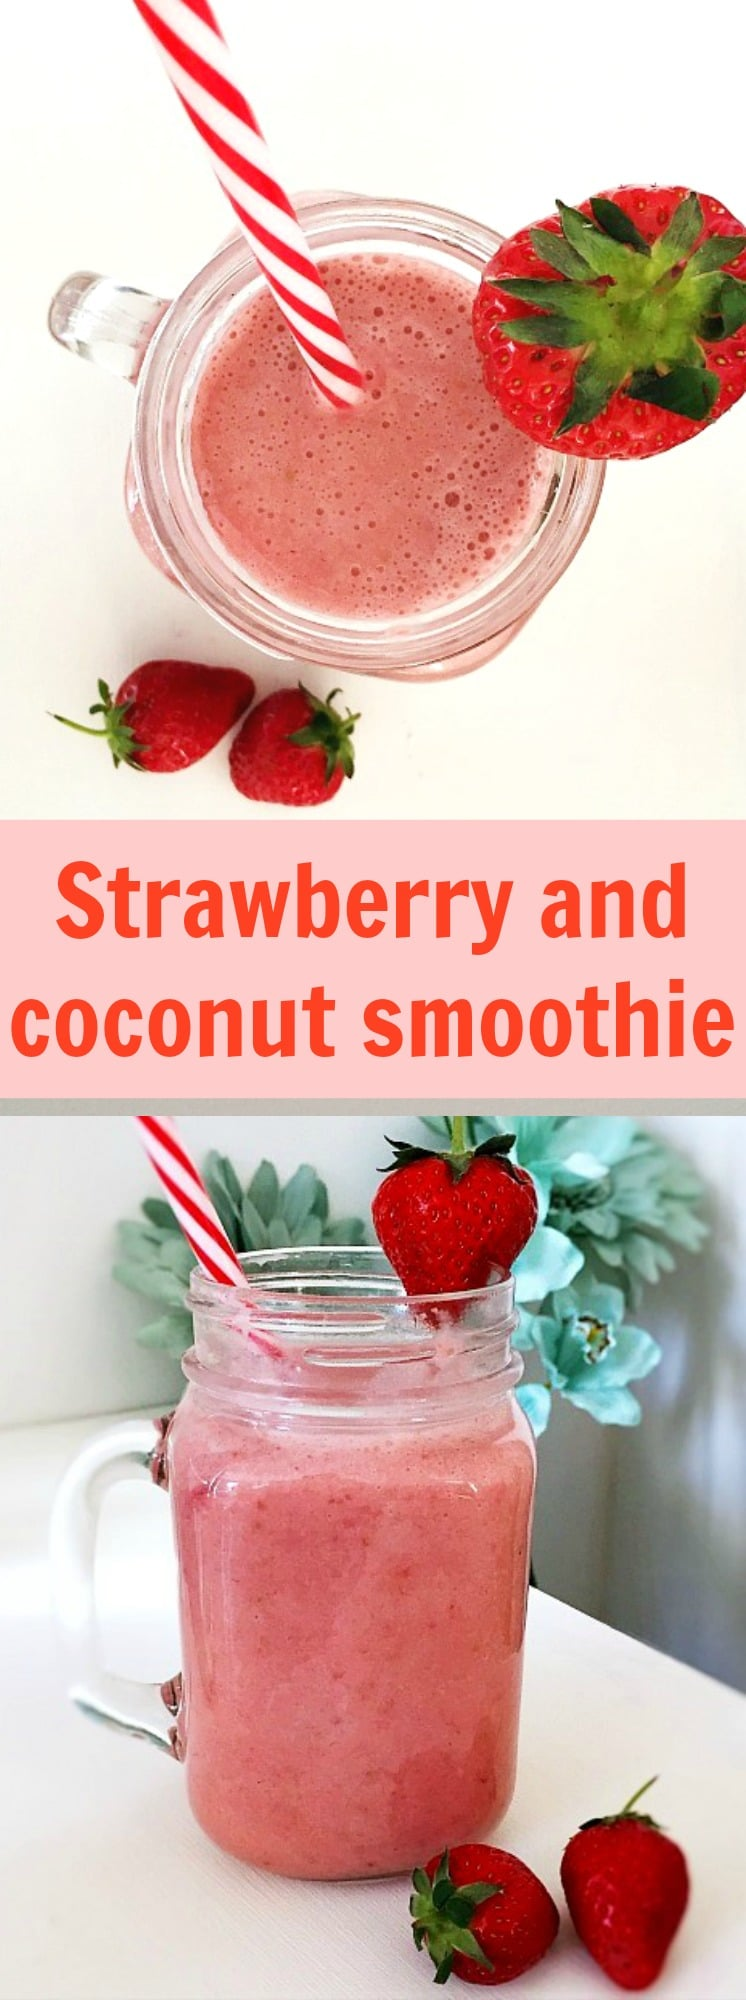 Strawberry and coconut smoothie